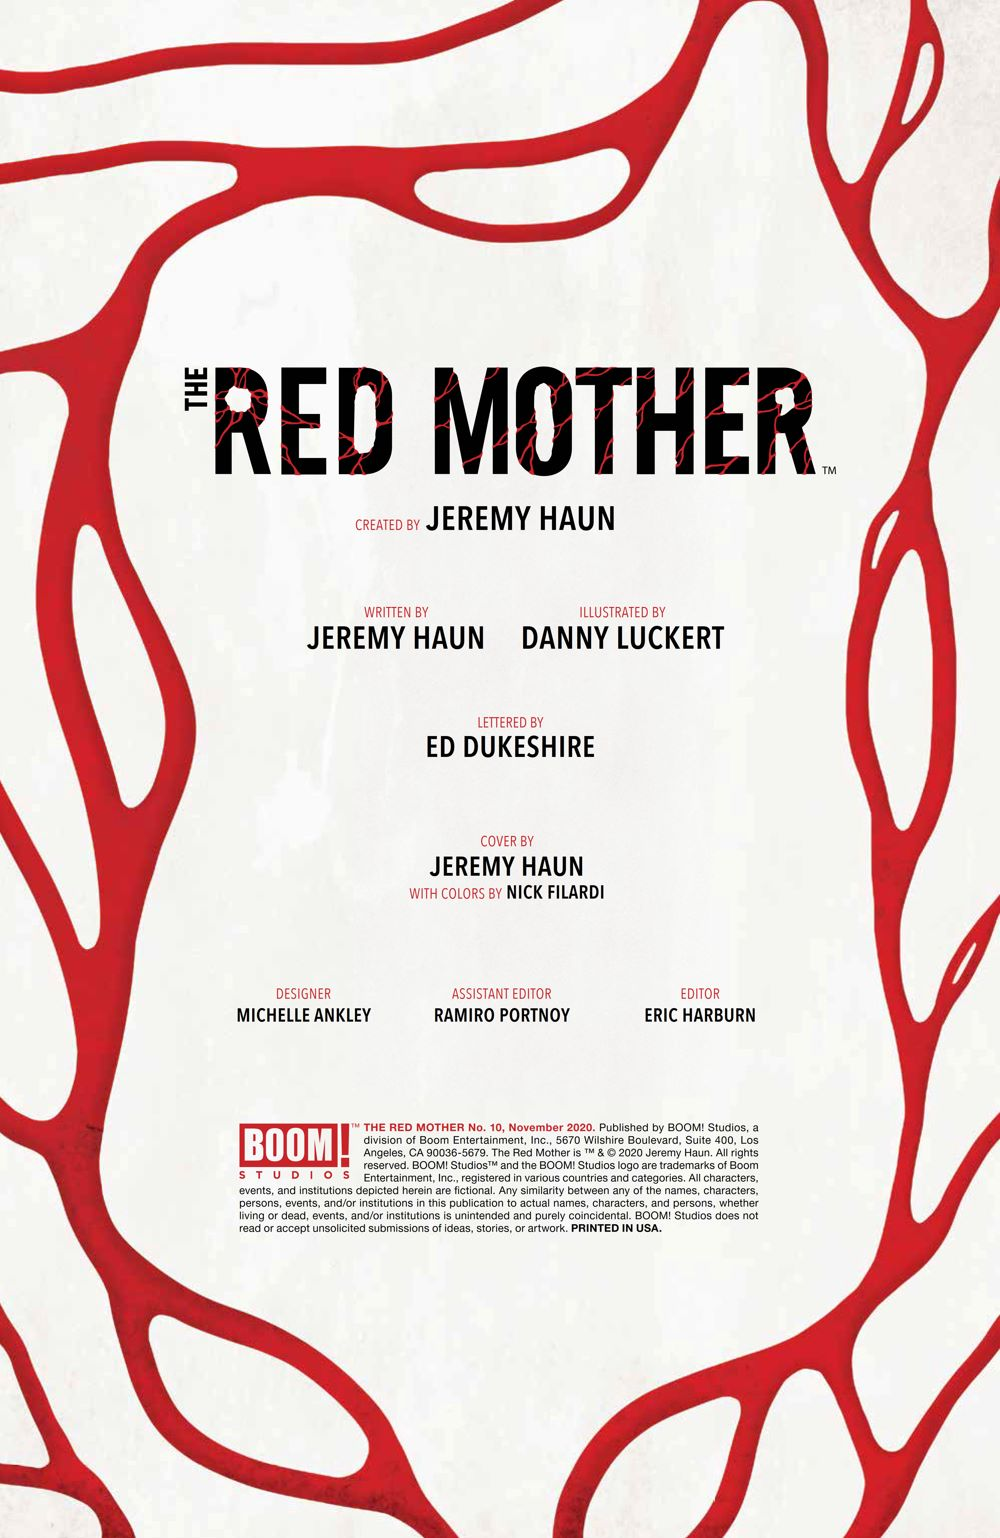 RedMother_010_PRESS_2 ComicList Previews: THE RED MOTHER #10